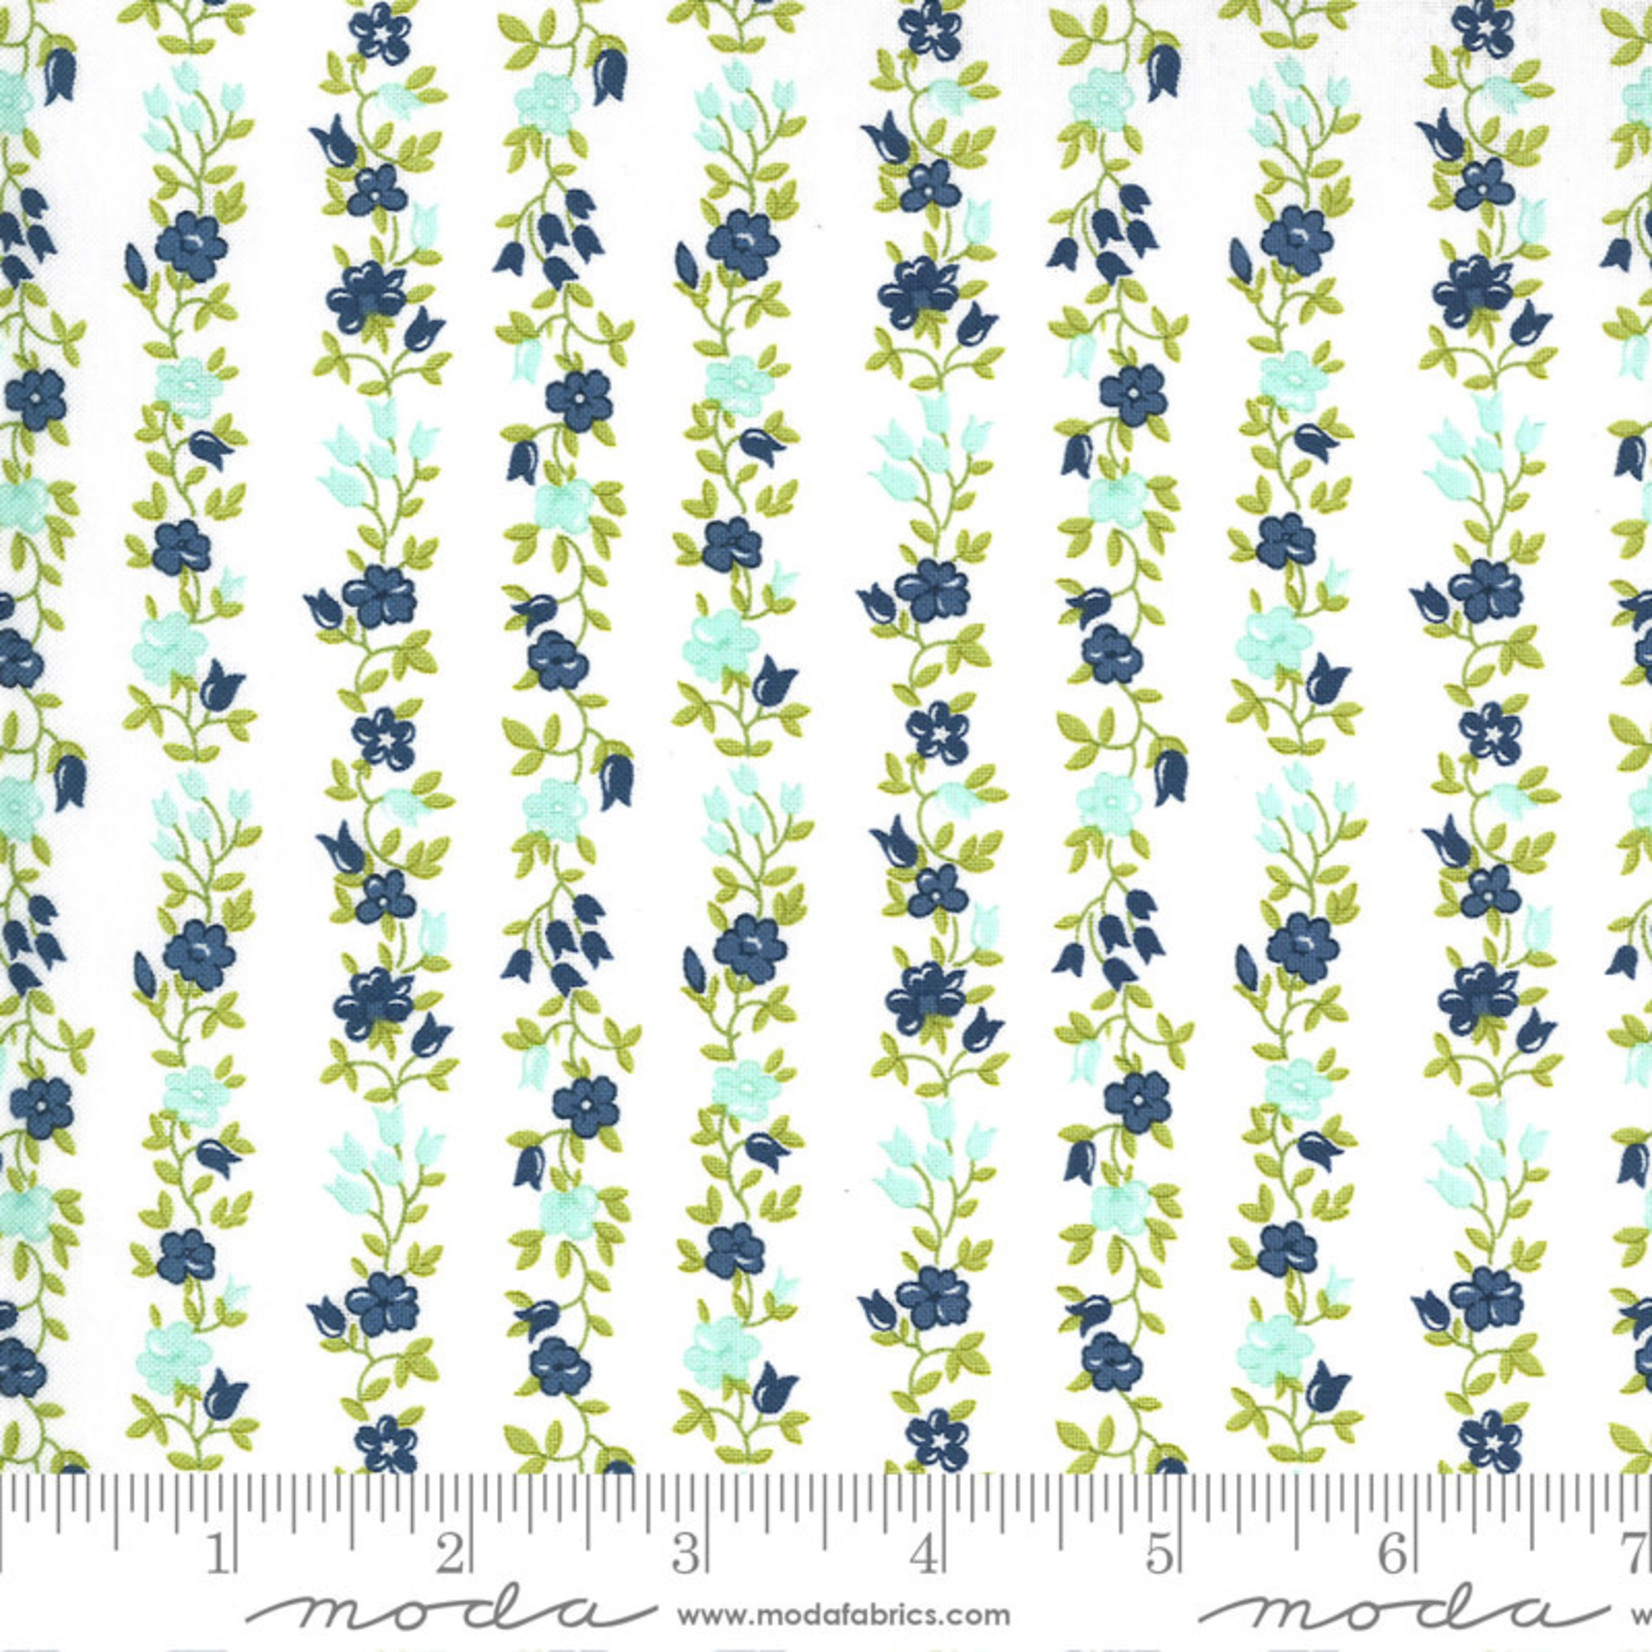 Bonnie & Camille Sunday Stroll, Freshly Cut, White Navy 55224 21 $0.20 per cm or $20/m